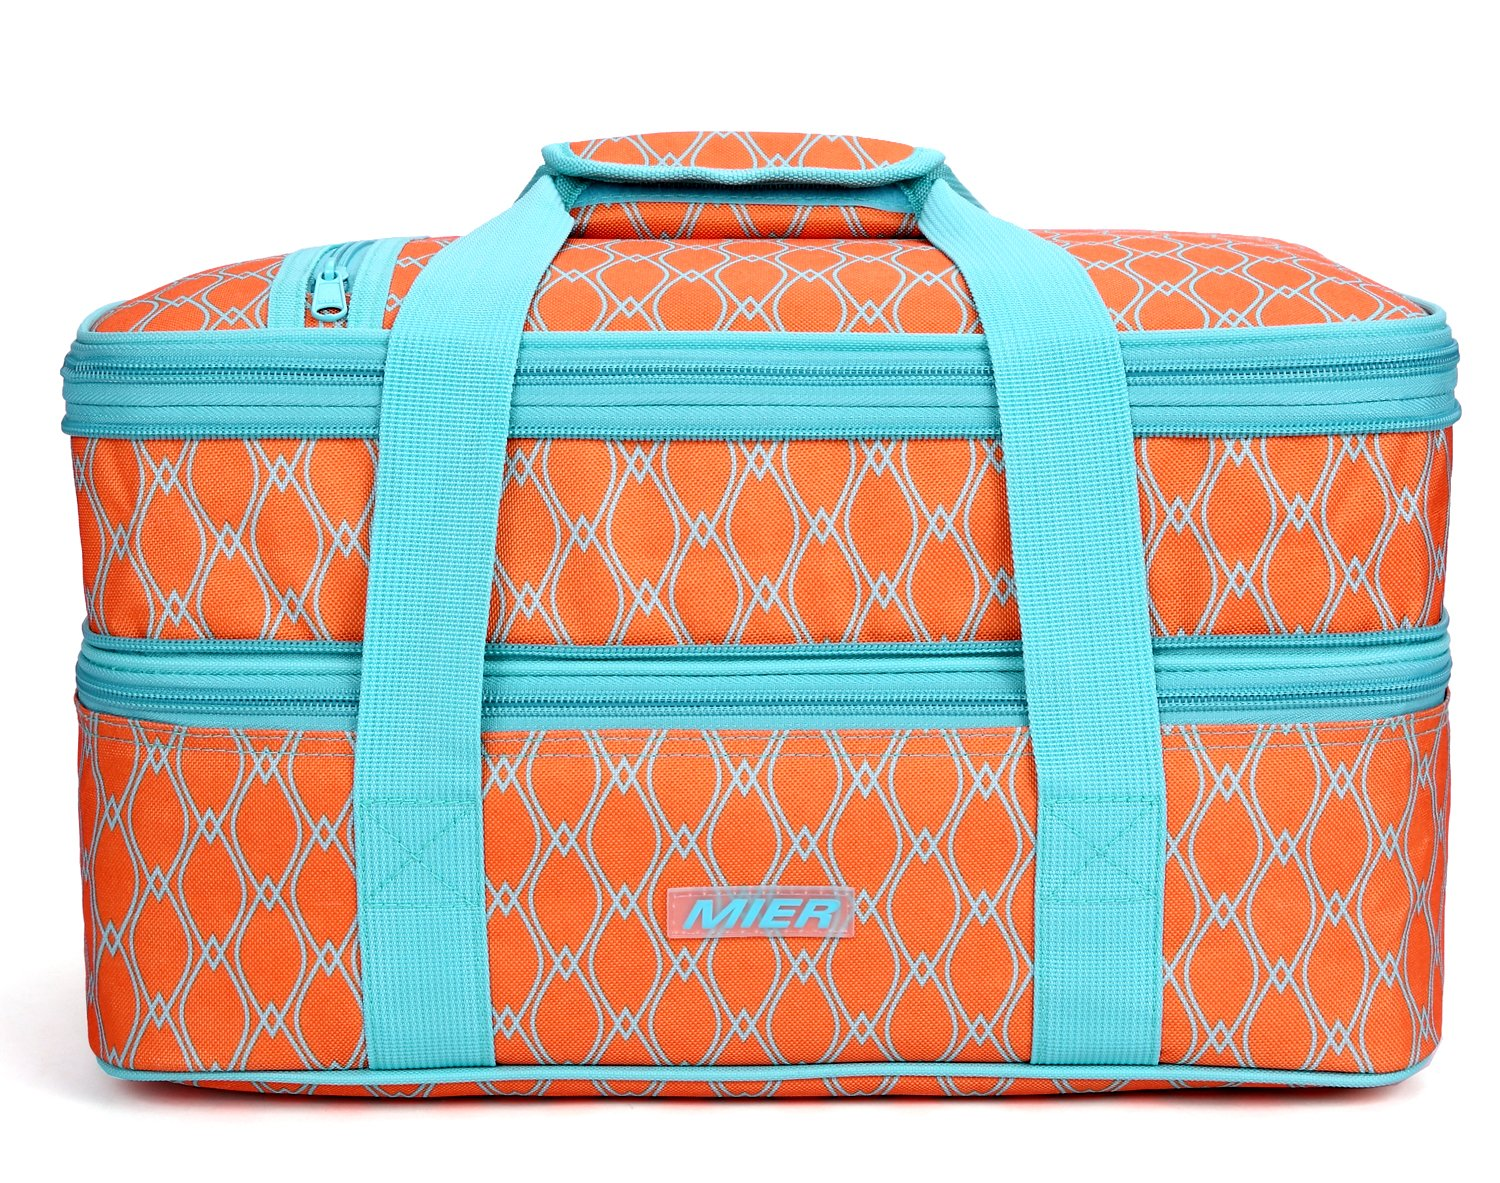 MIER Insulated Double Casserole Carrier Thermal Lunch Tote for Potluck Parties, Picnic, Beach, Fits 9 x 13 Inches Casserole Dish, Expandable, Orange by MIER